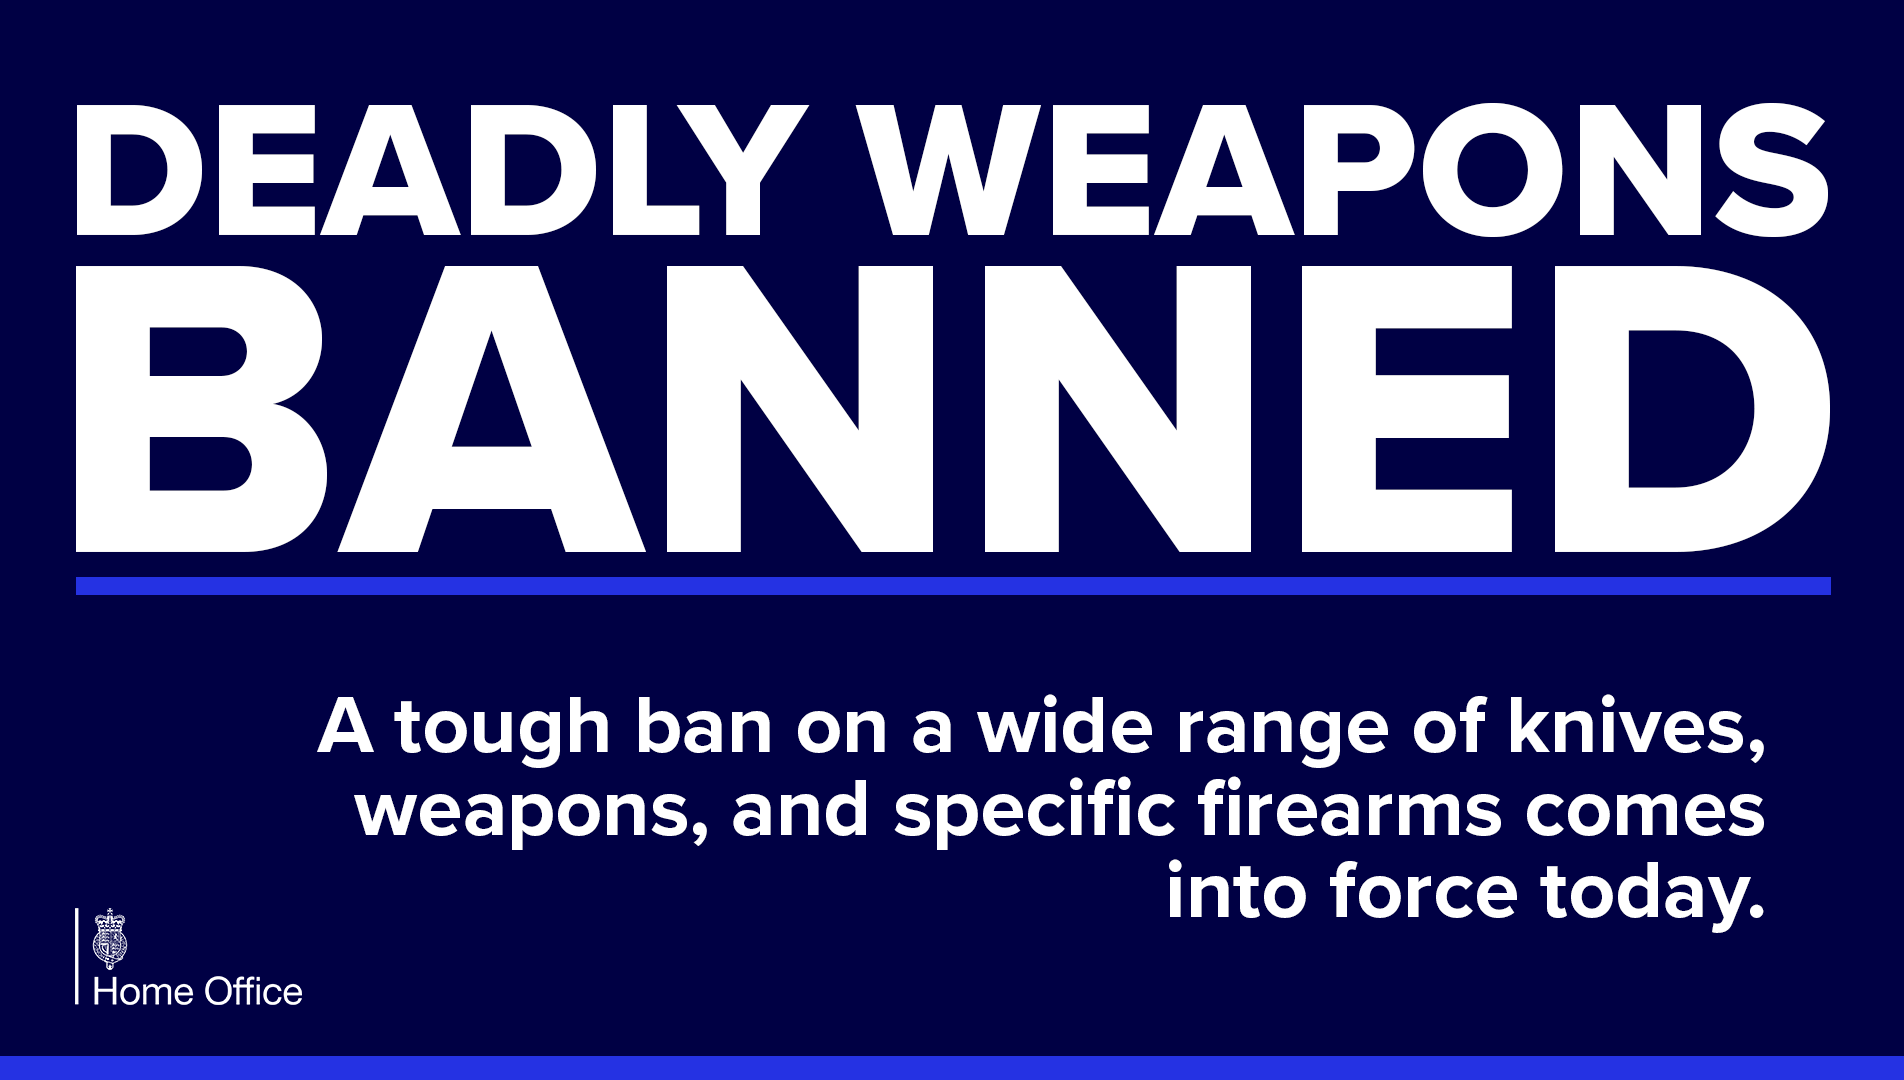 Ban On Knives, Firearms And Offensive Weapons Comes Into Force